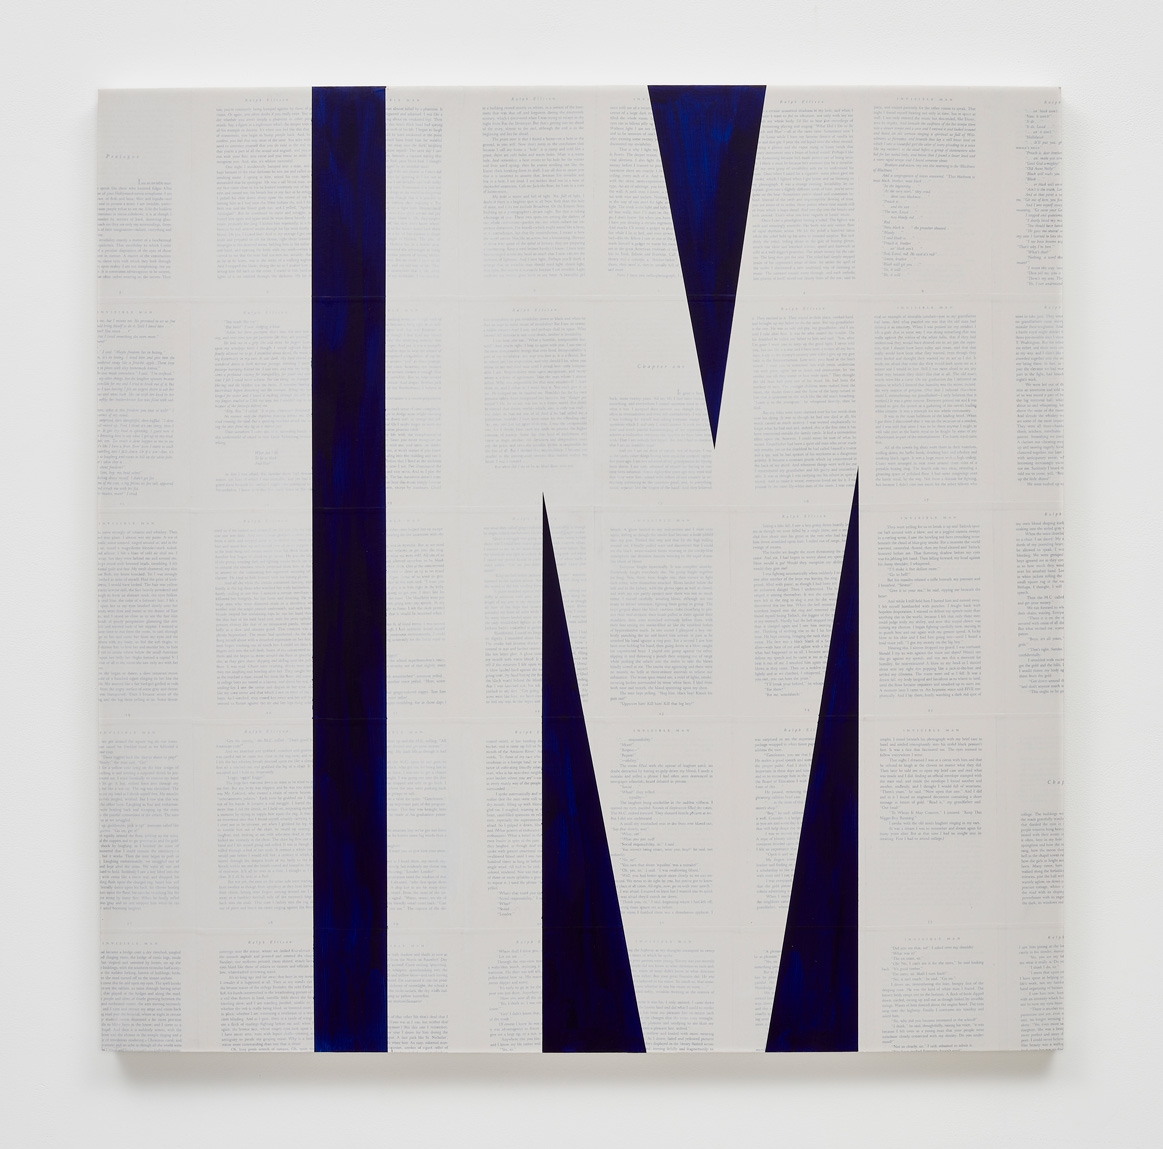 TIM ROLLINS and K.O.S., Invisible Man (after Ralph Ellison), 2014